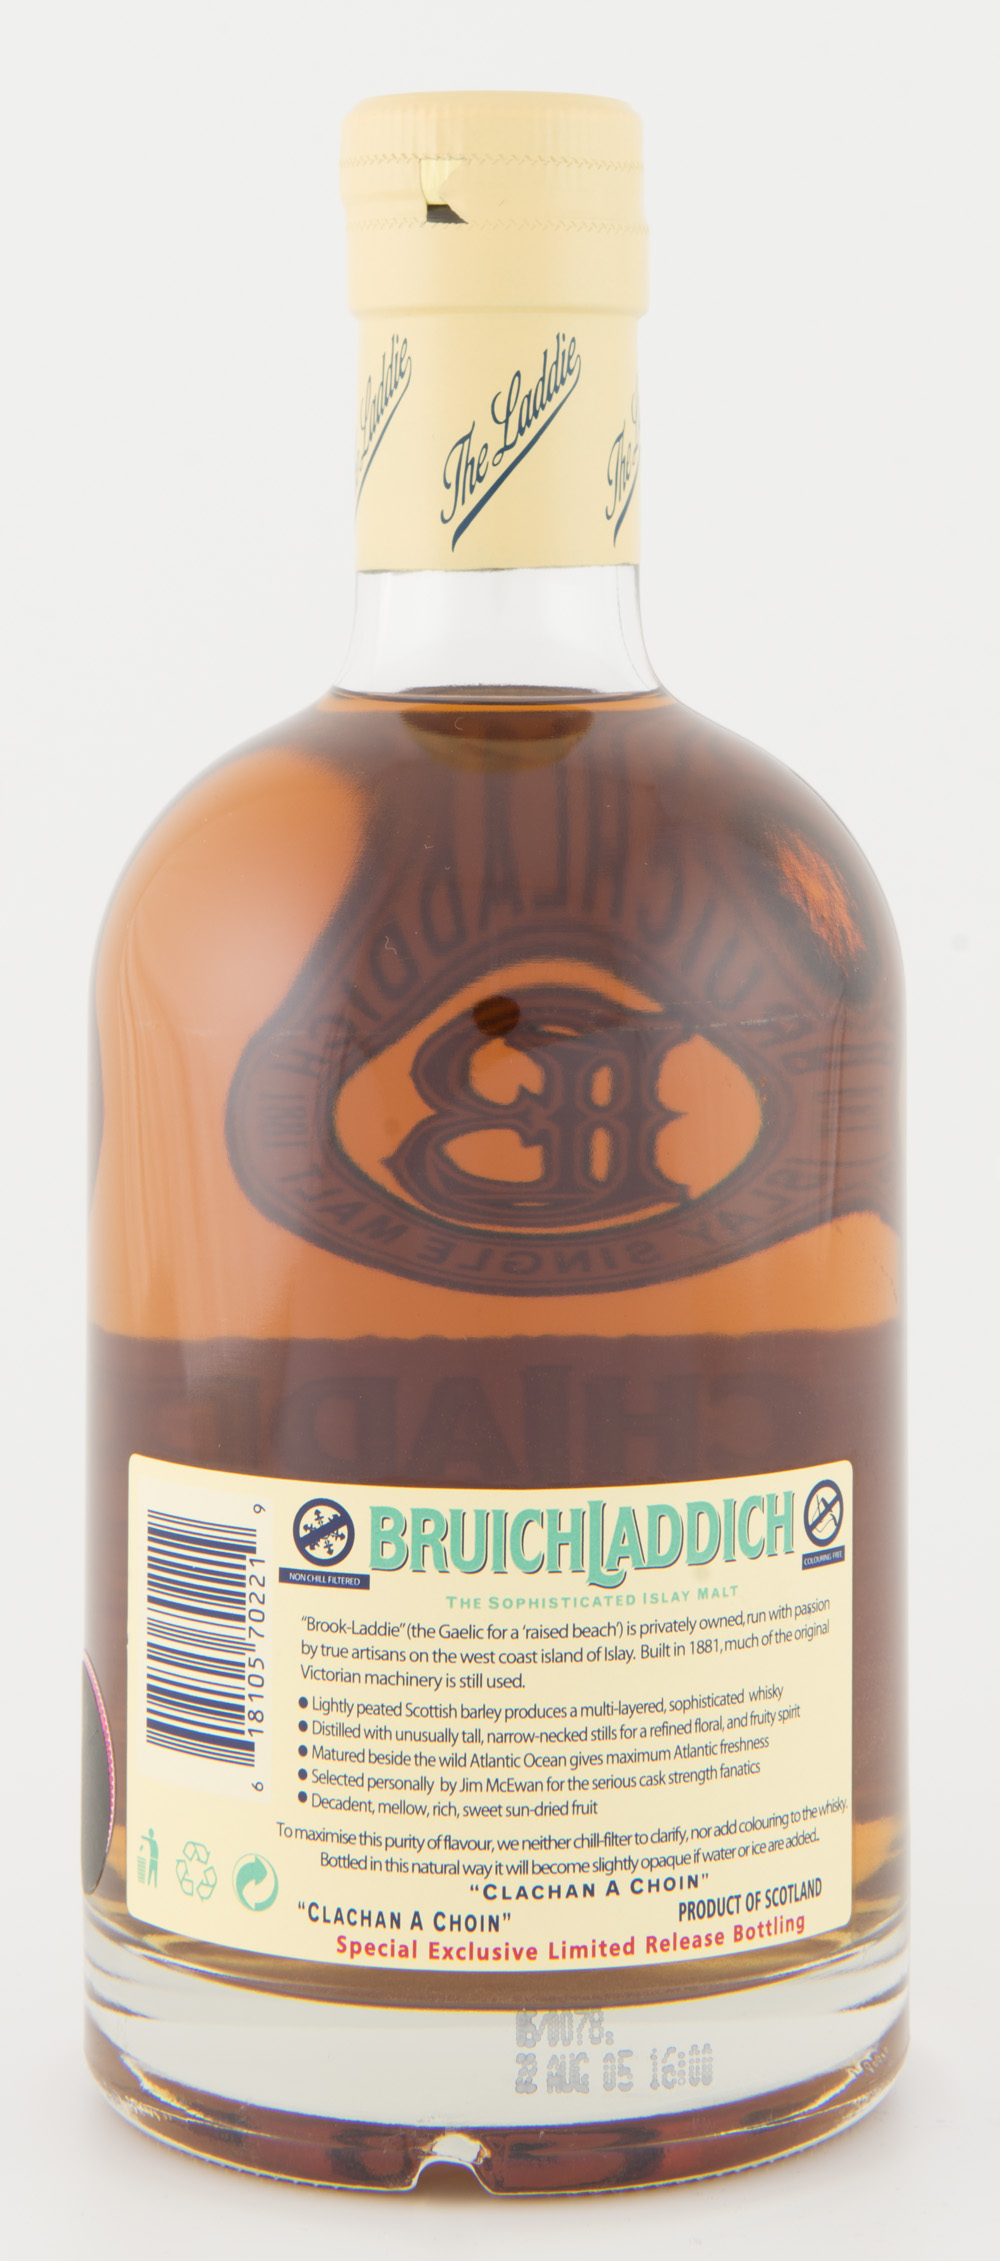 Billede: DSC_3572 Bruichladdich Full Strength 1989 - 16 years - bottle back.jpg